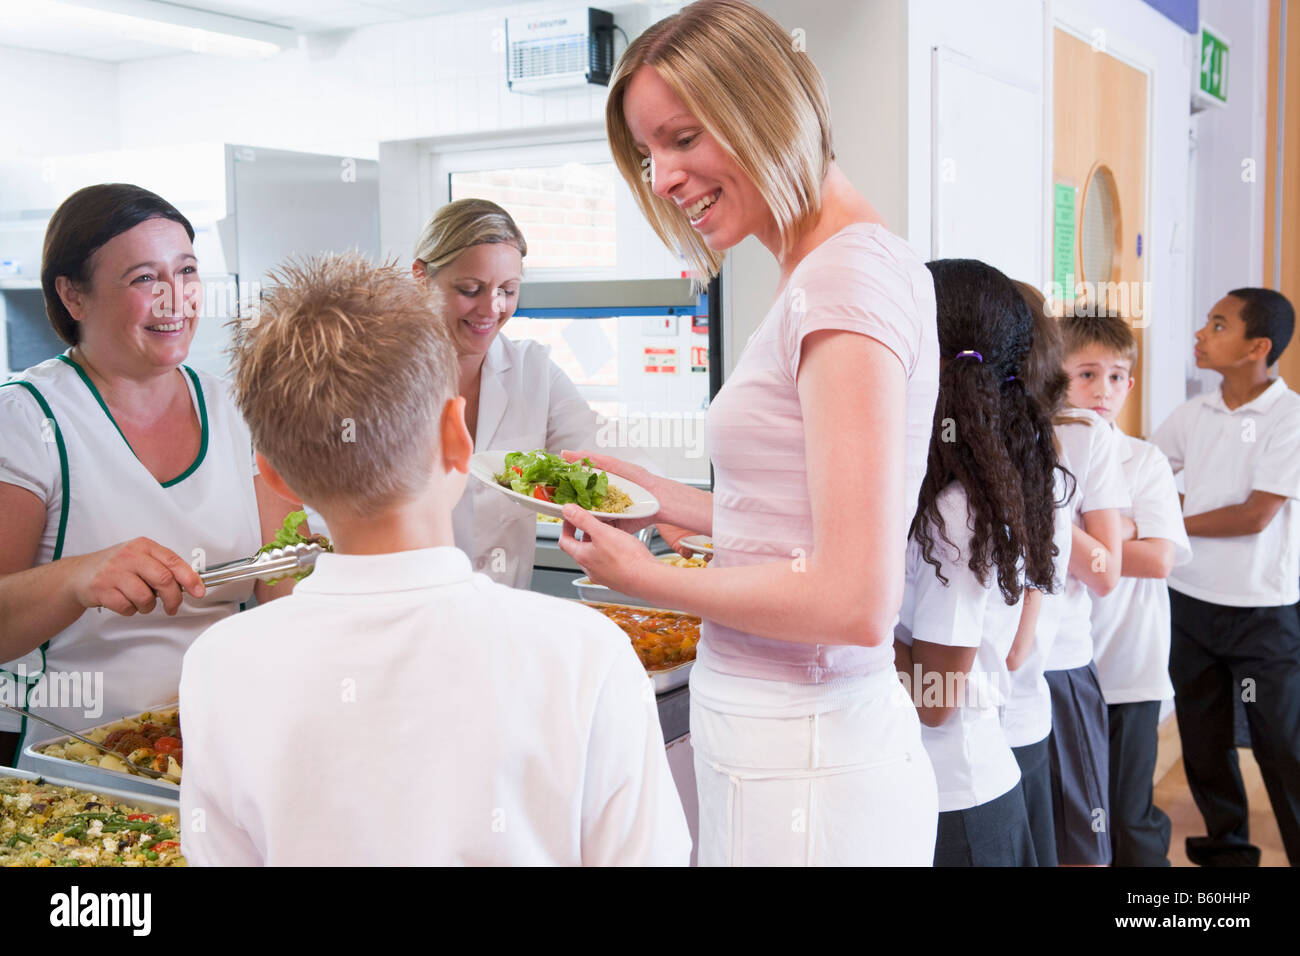 Students in cafeteria line with teacher at lunchtime - Stock Image